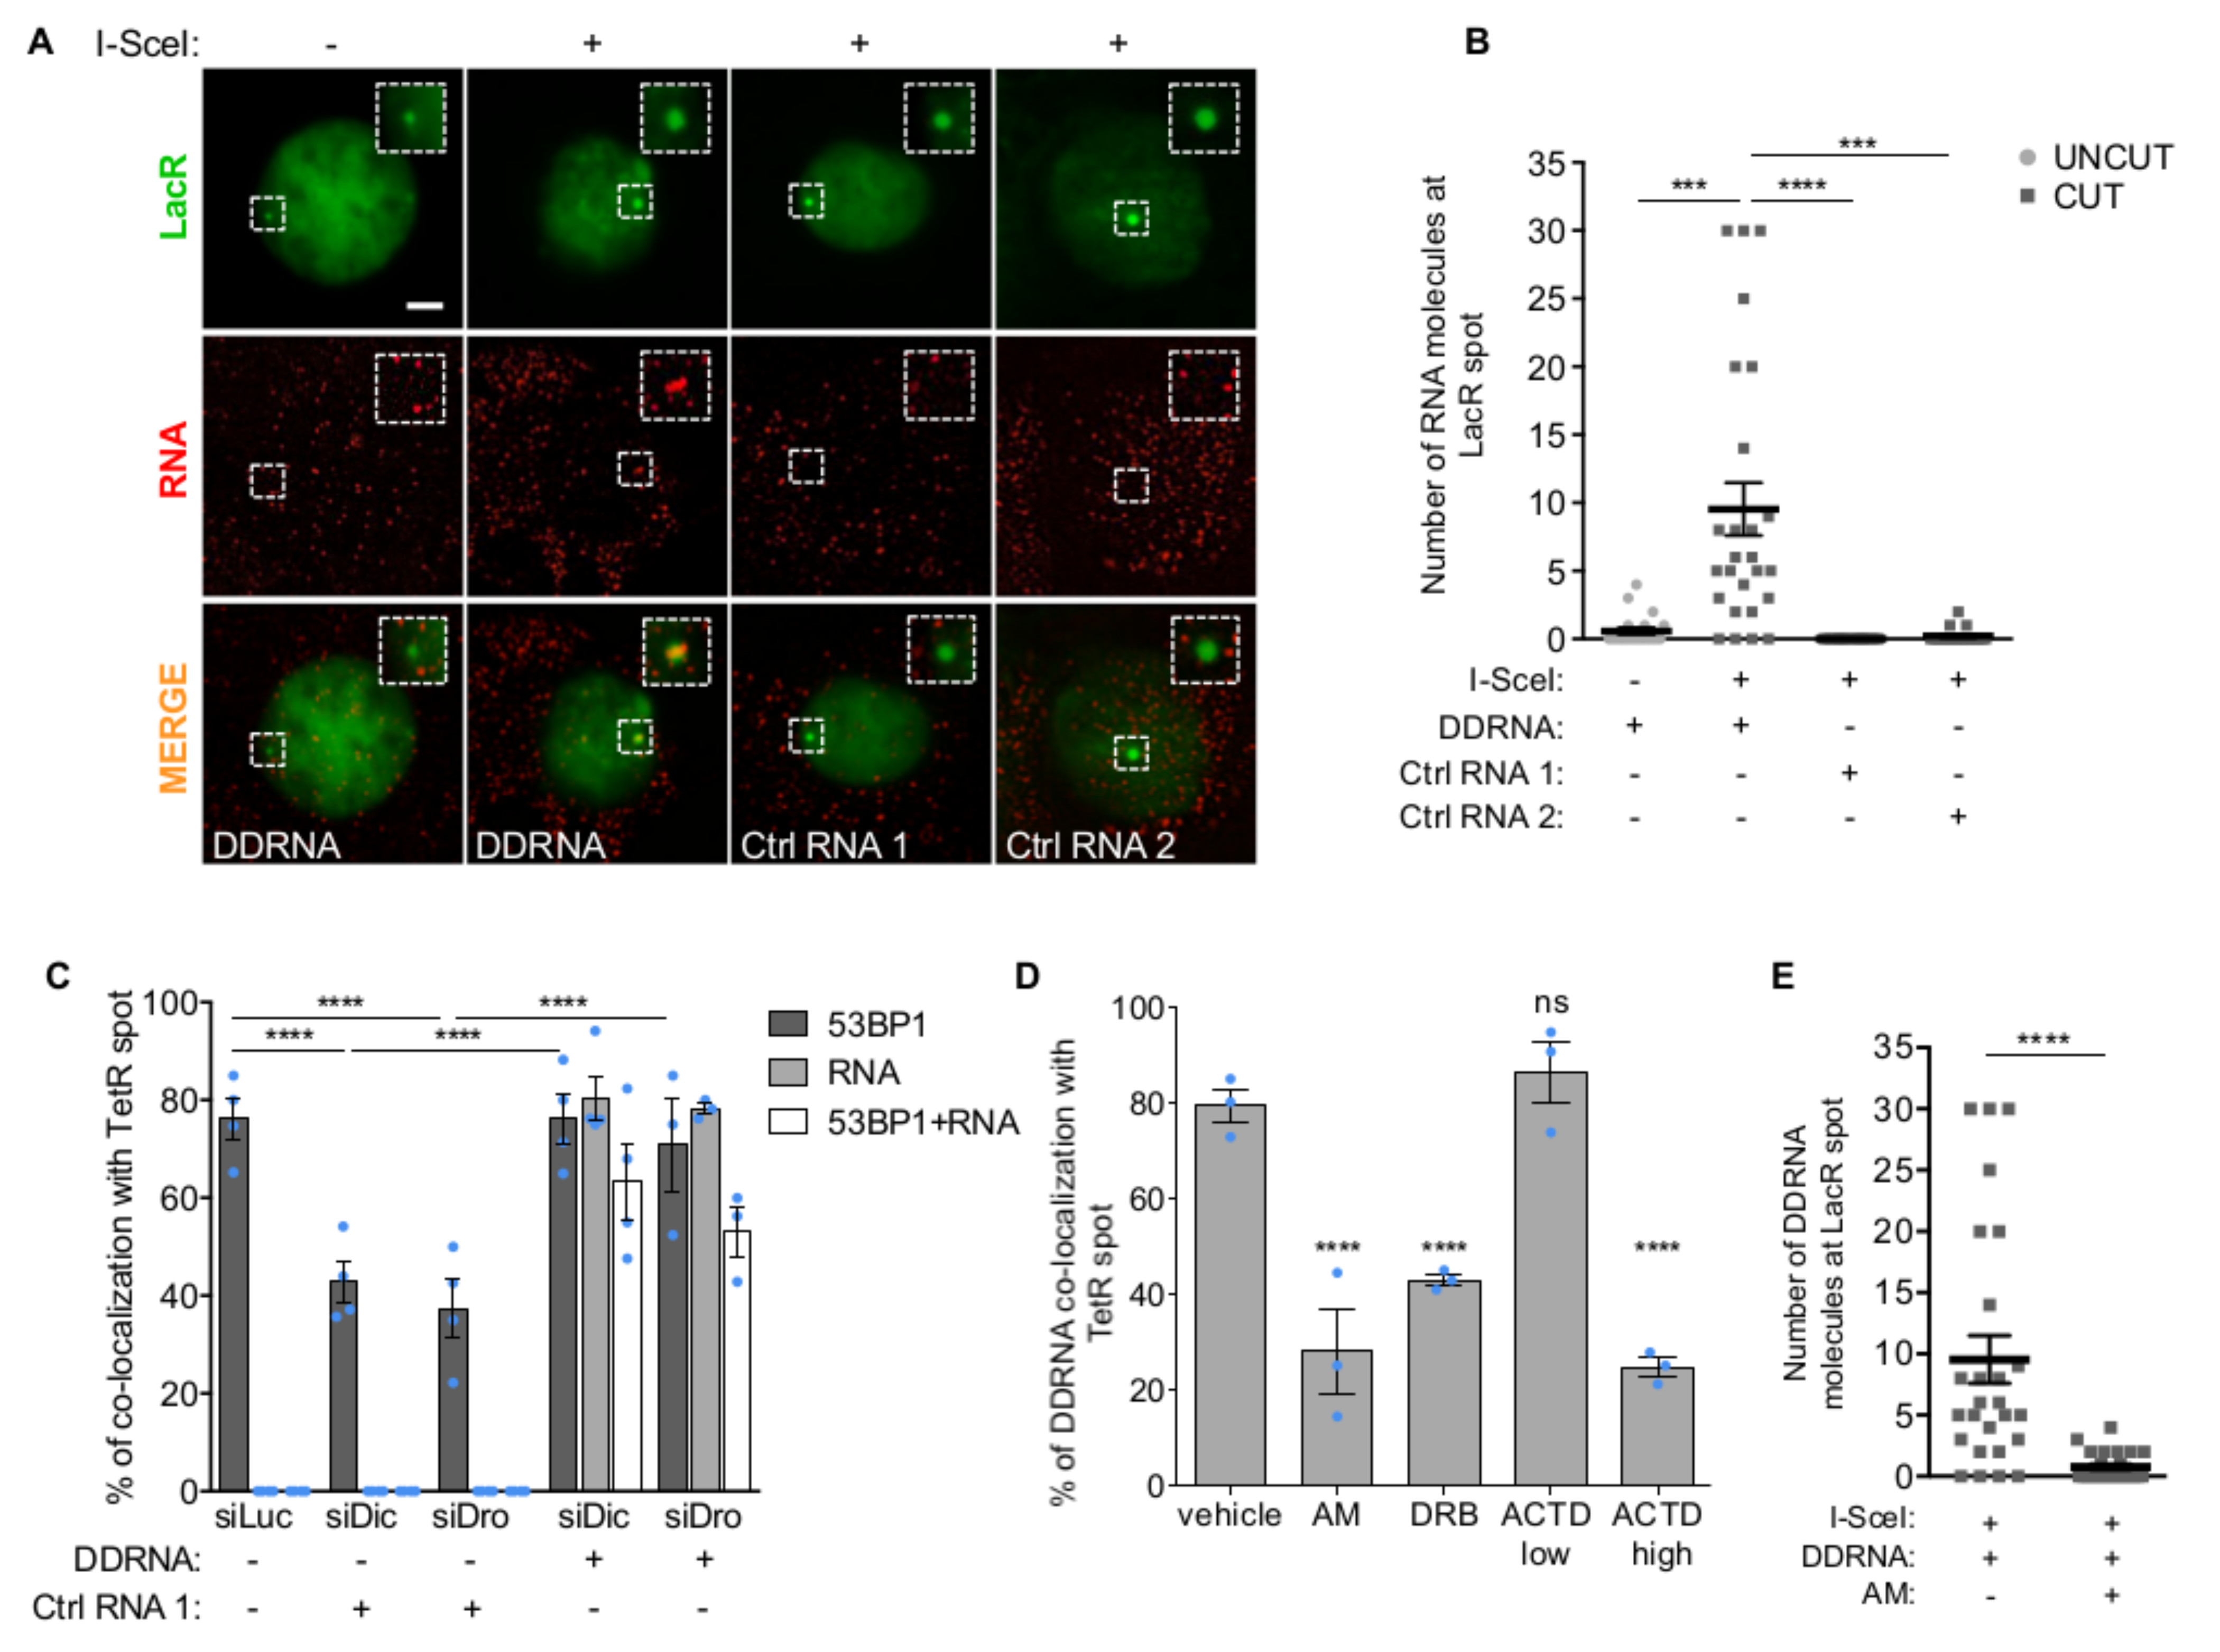 Sequence-specific localization of DDRNAs at DNA damage sites is transcription-dependent. ( A ) Images of NIH2/4 cells expressing GFP-LacR, microinjected with double-stranded DDRNA-Cy5, artificial CXCR4-Cy5 miRNA (Ctrl RNA 1) or let-7a-Cy5 miRNA (Ctrl RNA 2), together with BSA (-) or I-SceI restriction enzyme (+) and imaged 4 h post injection. Scale bar 5 µm. Inset is a magnified view of the boxed region. Images from one out of 3 experiments with similar results. ( B ) Quantification of (A) showing the number of fluorophore-labeled RNA molecules at the locus as measured by single-molecule analysis based on stepwise photobleaching. Dots represent individual cells. The black line represents the mean ± SEM (data are shown as pool of n=3 independent experiments). ( C ) DDRNAs localize at the damage site to restore DDR focus formation. NIH2/4 cells knocked-down for Dicer and Drosha were mildly permeabilized and incubated with DDRNA-Cy5 or CXCR4-Cy5 (Ctrl RNA 1). The bar plot shows the percentage of cells positive for co-localization of 53BP1 with TetR, of RNA-Cy5 with TetR and the triple co-localization of 53BP1, RNA-Cy5 and TetR. Error bars indicate SEM (for siLuc and siDic n=4, for siDro n=3 independent experiments, ≥70 cells analysed in total per condition). ( D ) NIH2/4 cells expressing YFP-TetR and inducible I-SceI were treated with AM, DRB or ACTD at low and high doses or vehicle alone for 2 h before cut induction, then mildly permeabilized and incubated with DDRNA-Cy5. The bar plots show the percentage of cells in which DDRNA signal co-localizes with the TetR spot. Error bars indicate SEM (n=3 independent experiments, ≥80 cells analysed in total per condition). ( E ) NIH2/4 cells expressing GFP-LacR were microinjected with double-stranded DDRNA-Cy5, together with I-SceI protein and AM and imaged 4 h post injection. The plot shows the number of DDRNA molecules at the locus as measured by single-molecule counting based on stepwise photobleaching. Dots represent individual cells. The black line represents the mean ± SEM (data are shown as pool of n=3 independent experiments). ( B,E ) P values were calculated using two-tailed t-test. ( C,D ) P values were calculated using chi-squared test. *** P